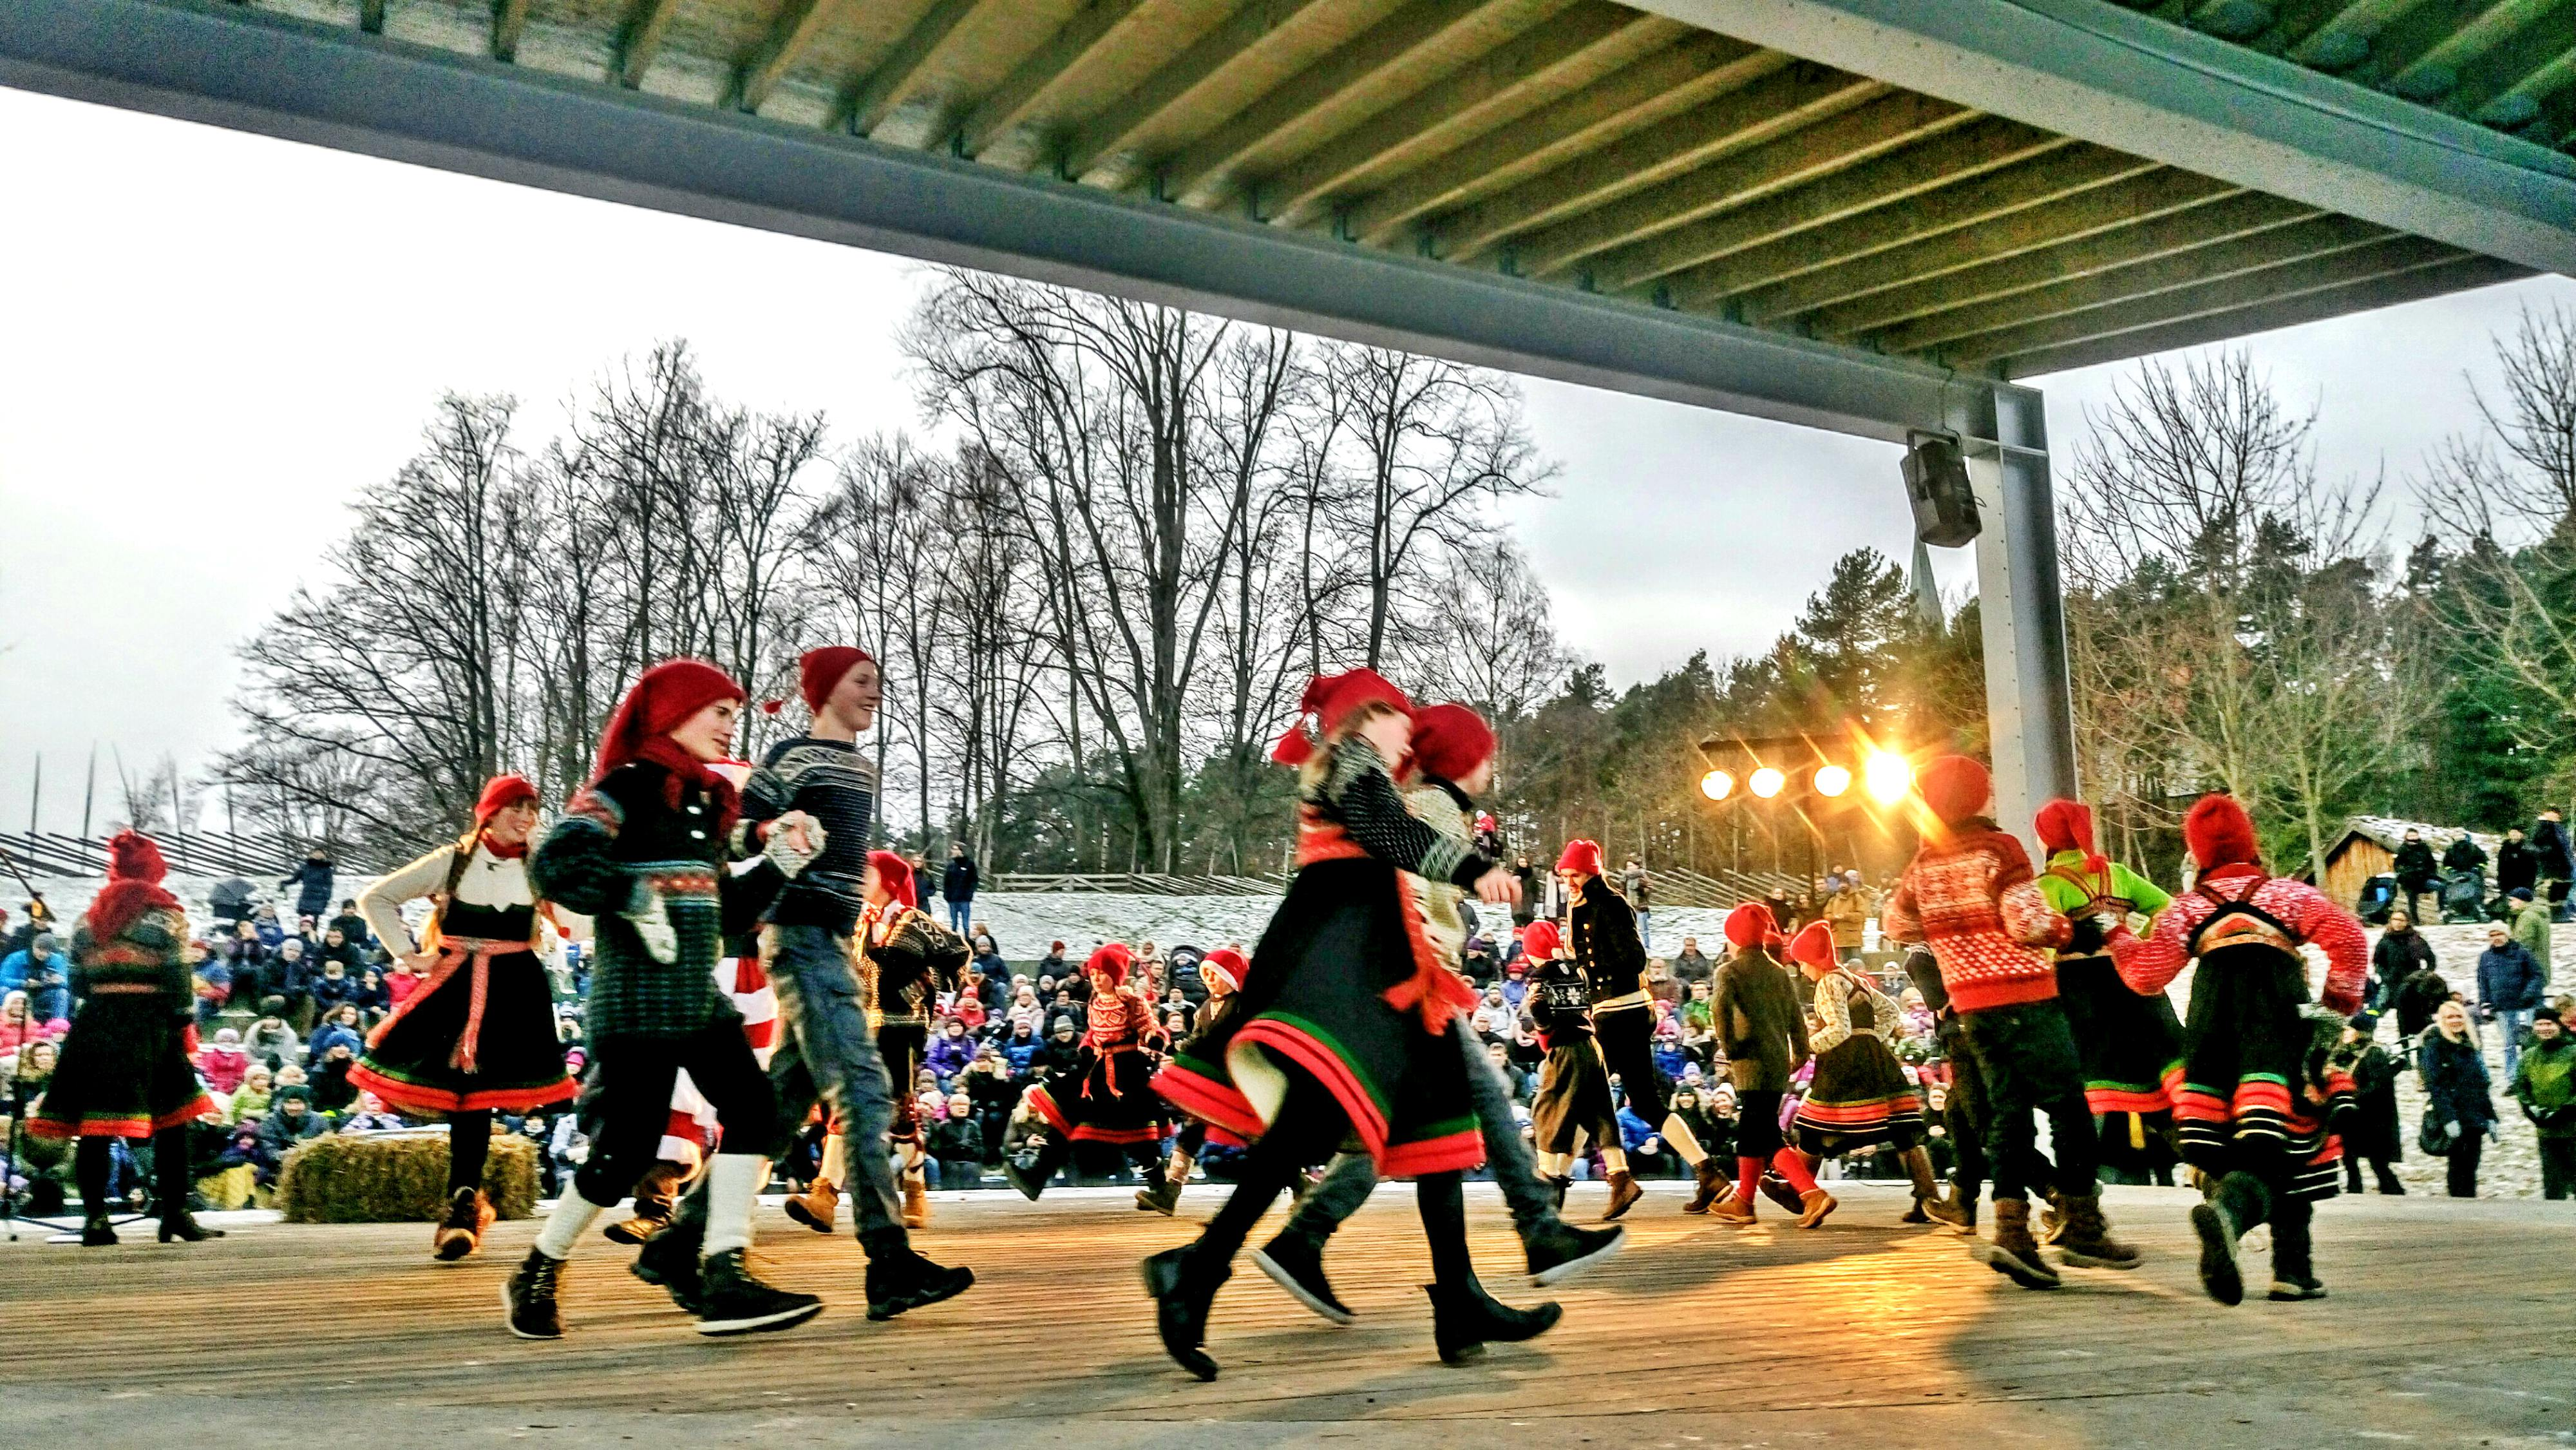 """Live """"nisse"""" dance at the Open air party piste."""